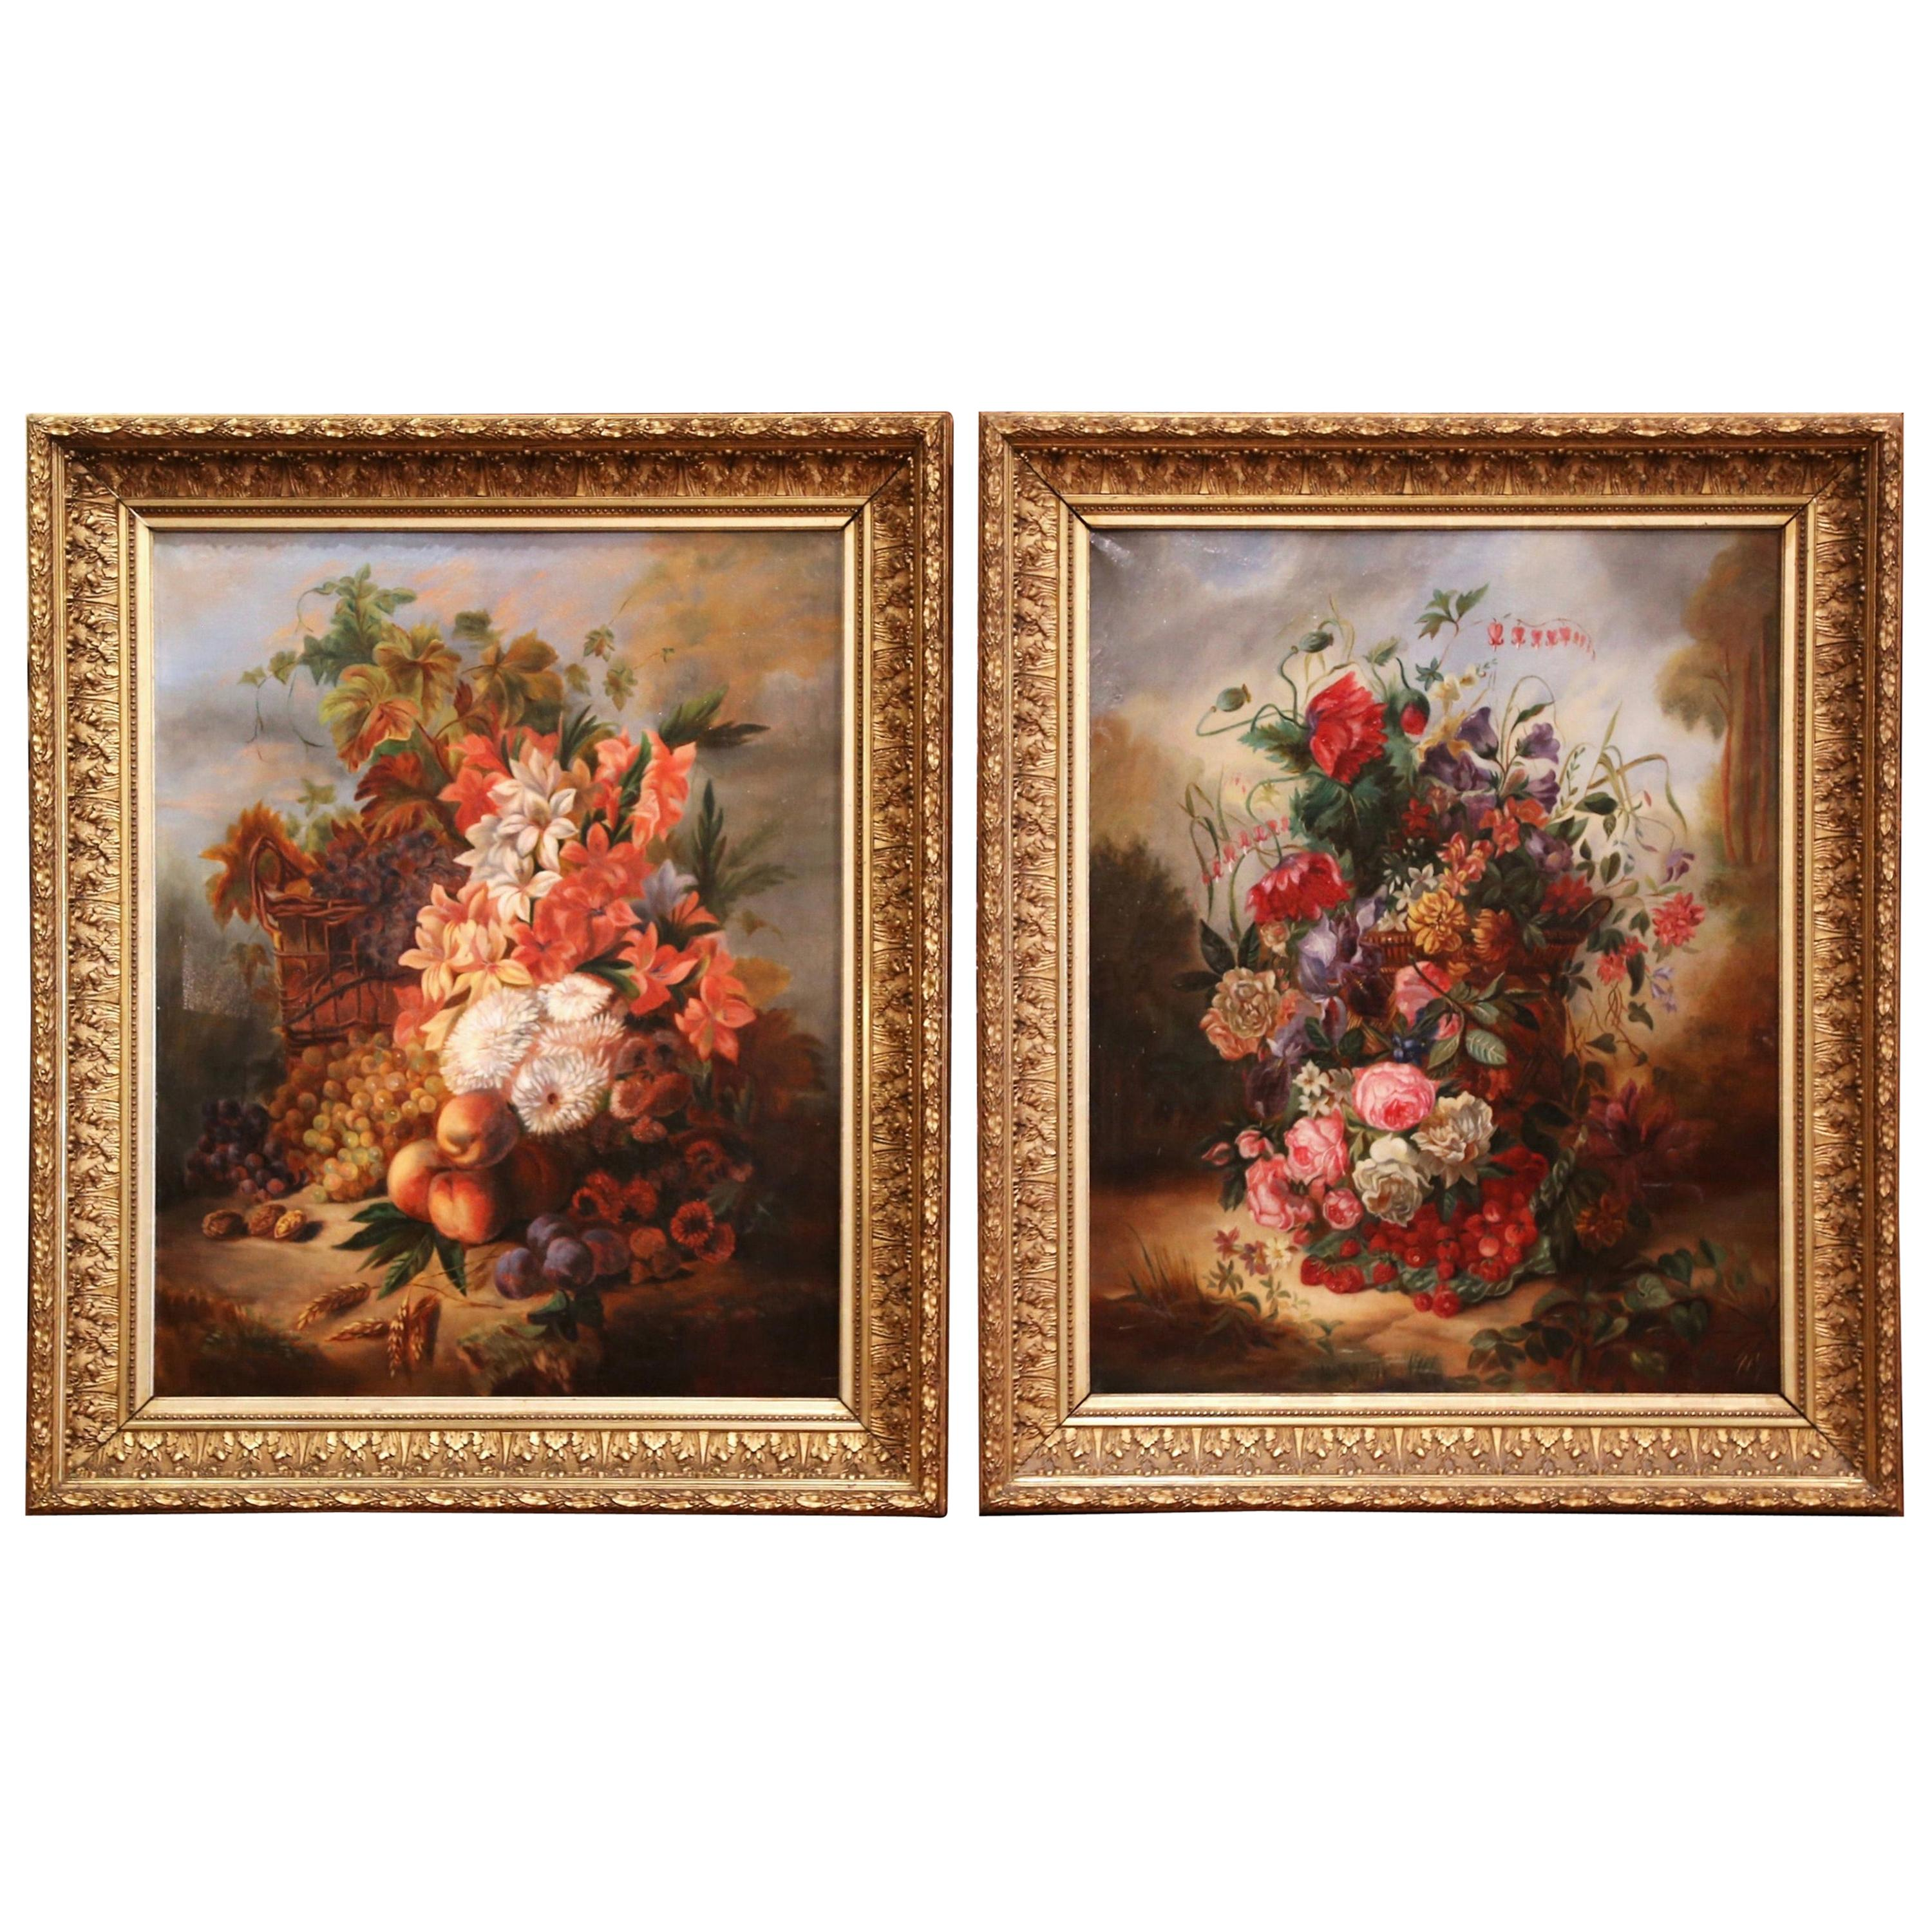 Pair of 19th Century French Still Life Flower Paintings in Gilt Frames